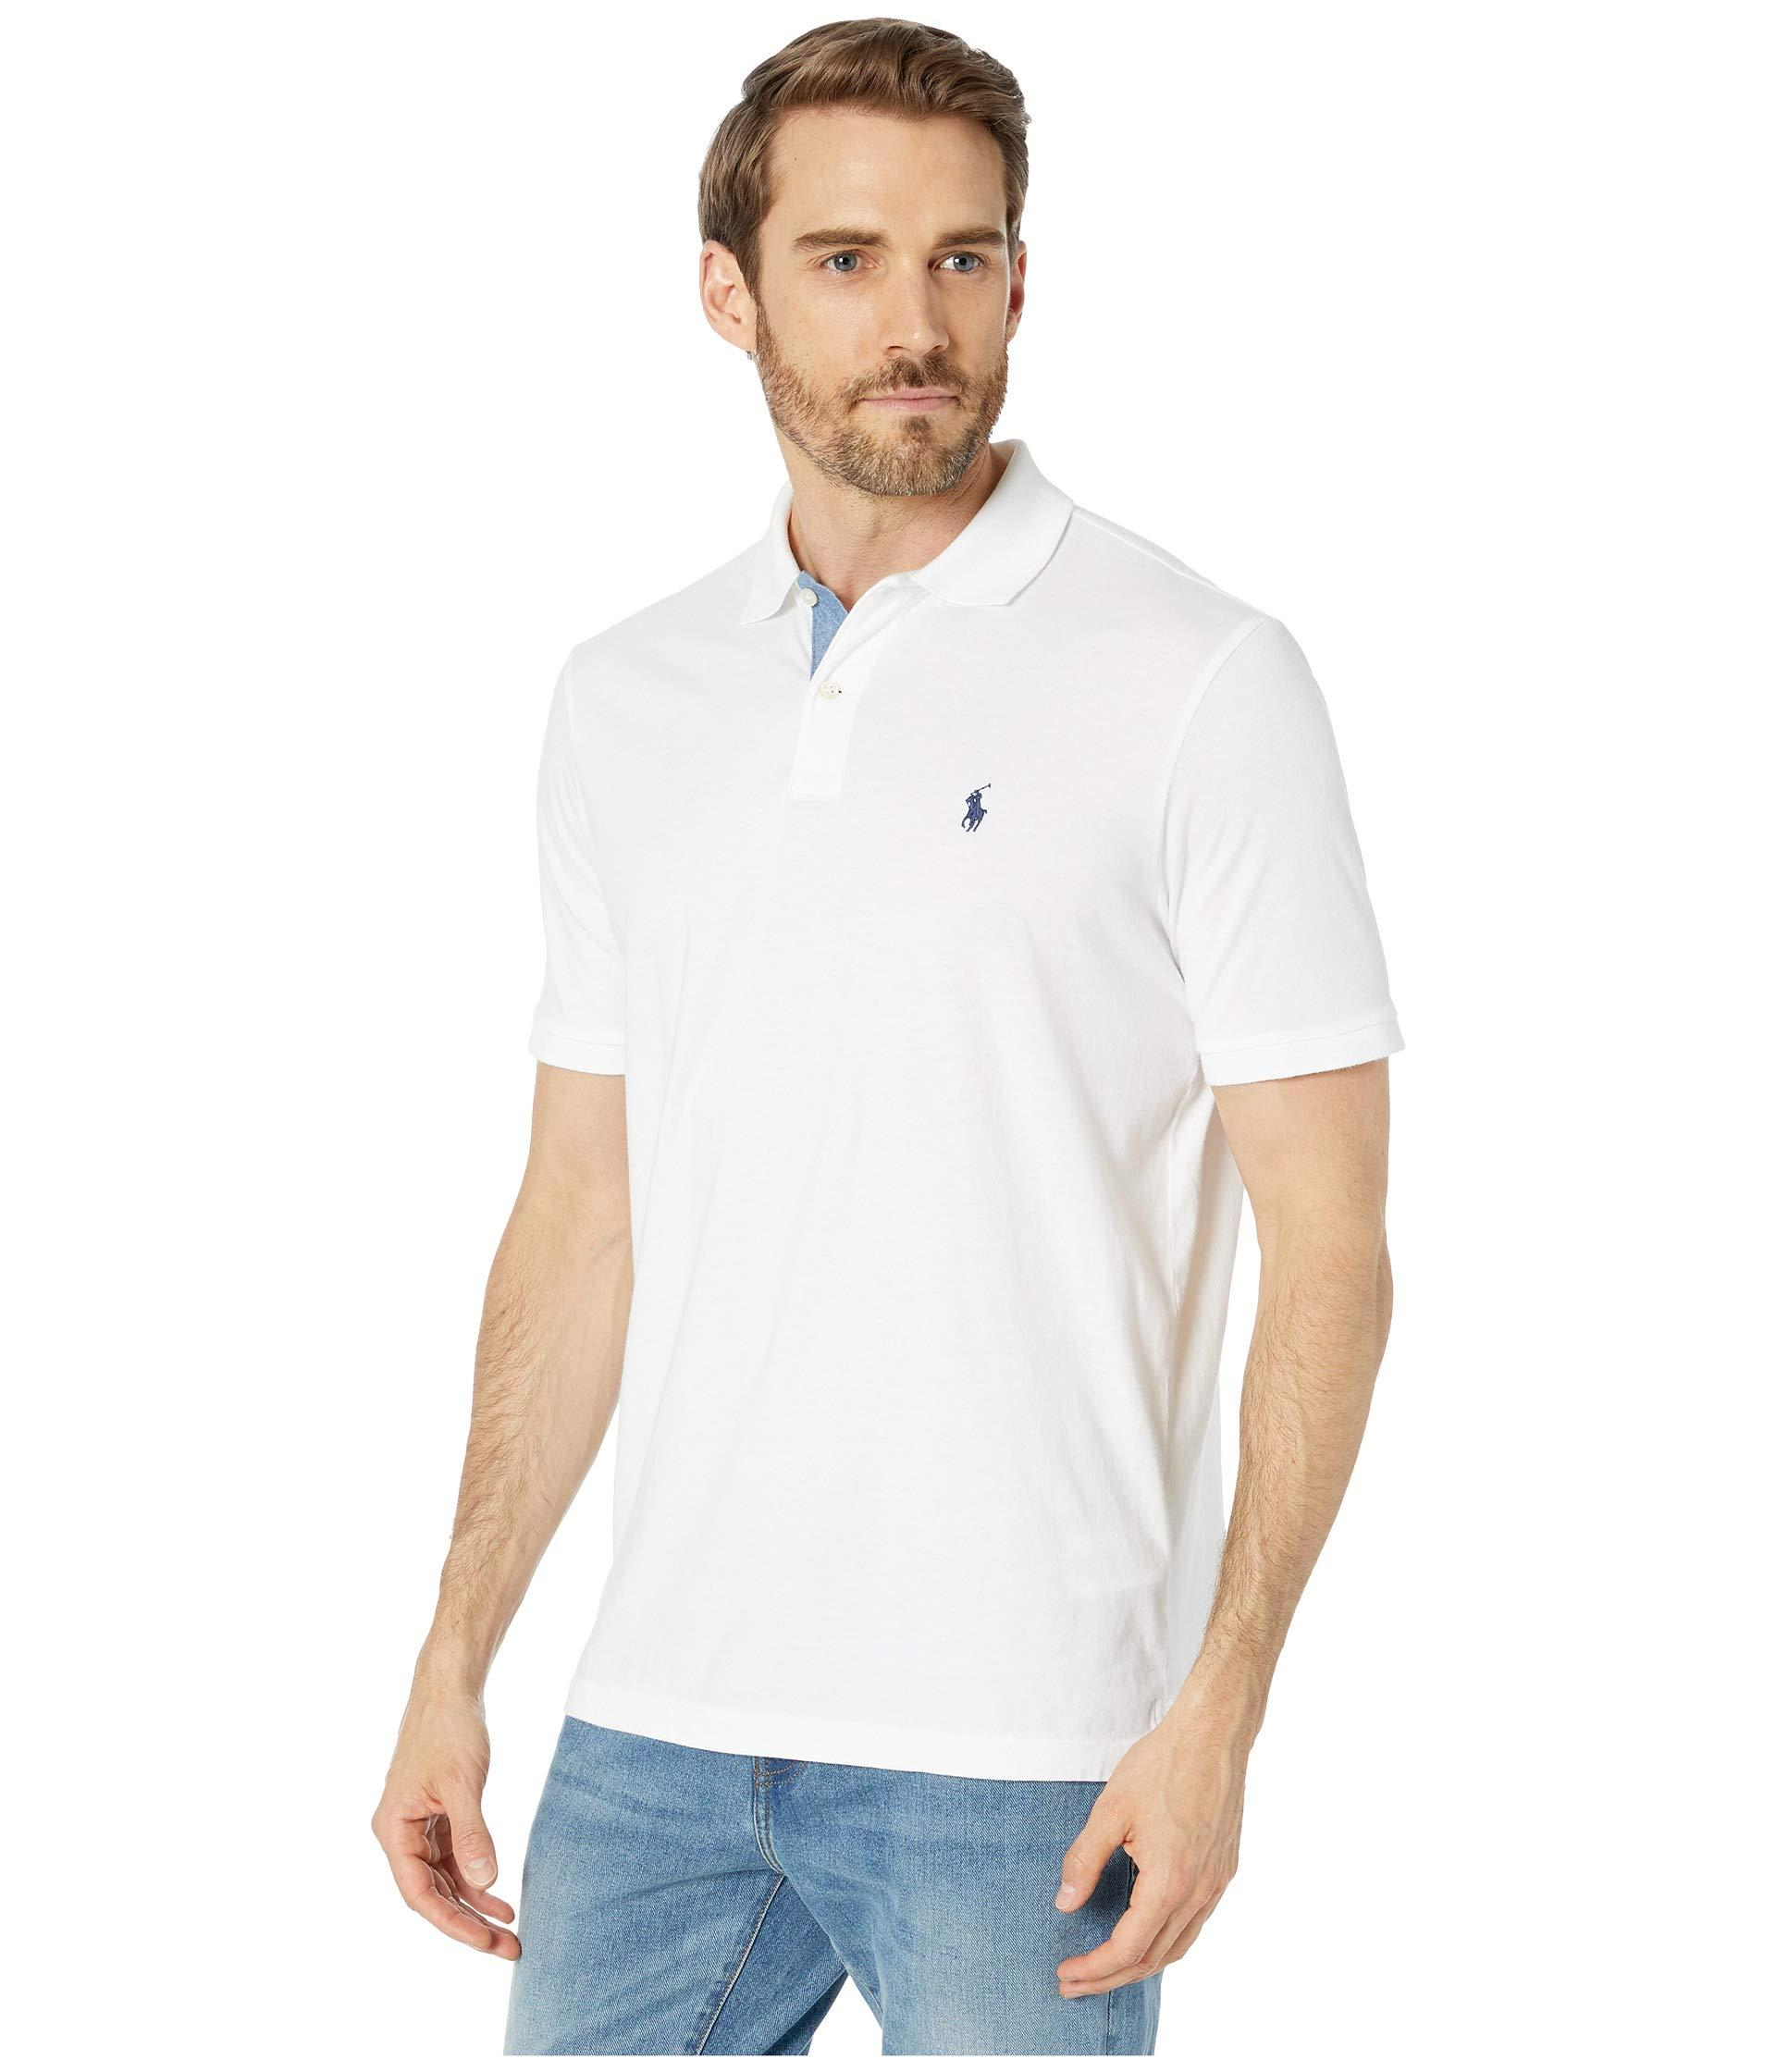 08fa22cb Polo Ralph Lauren Short Sleeve Jersey Polo - Classic (bayside Green) Men's  Clothing in White for Men - Lyst